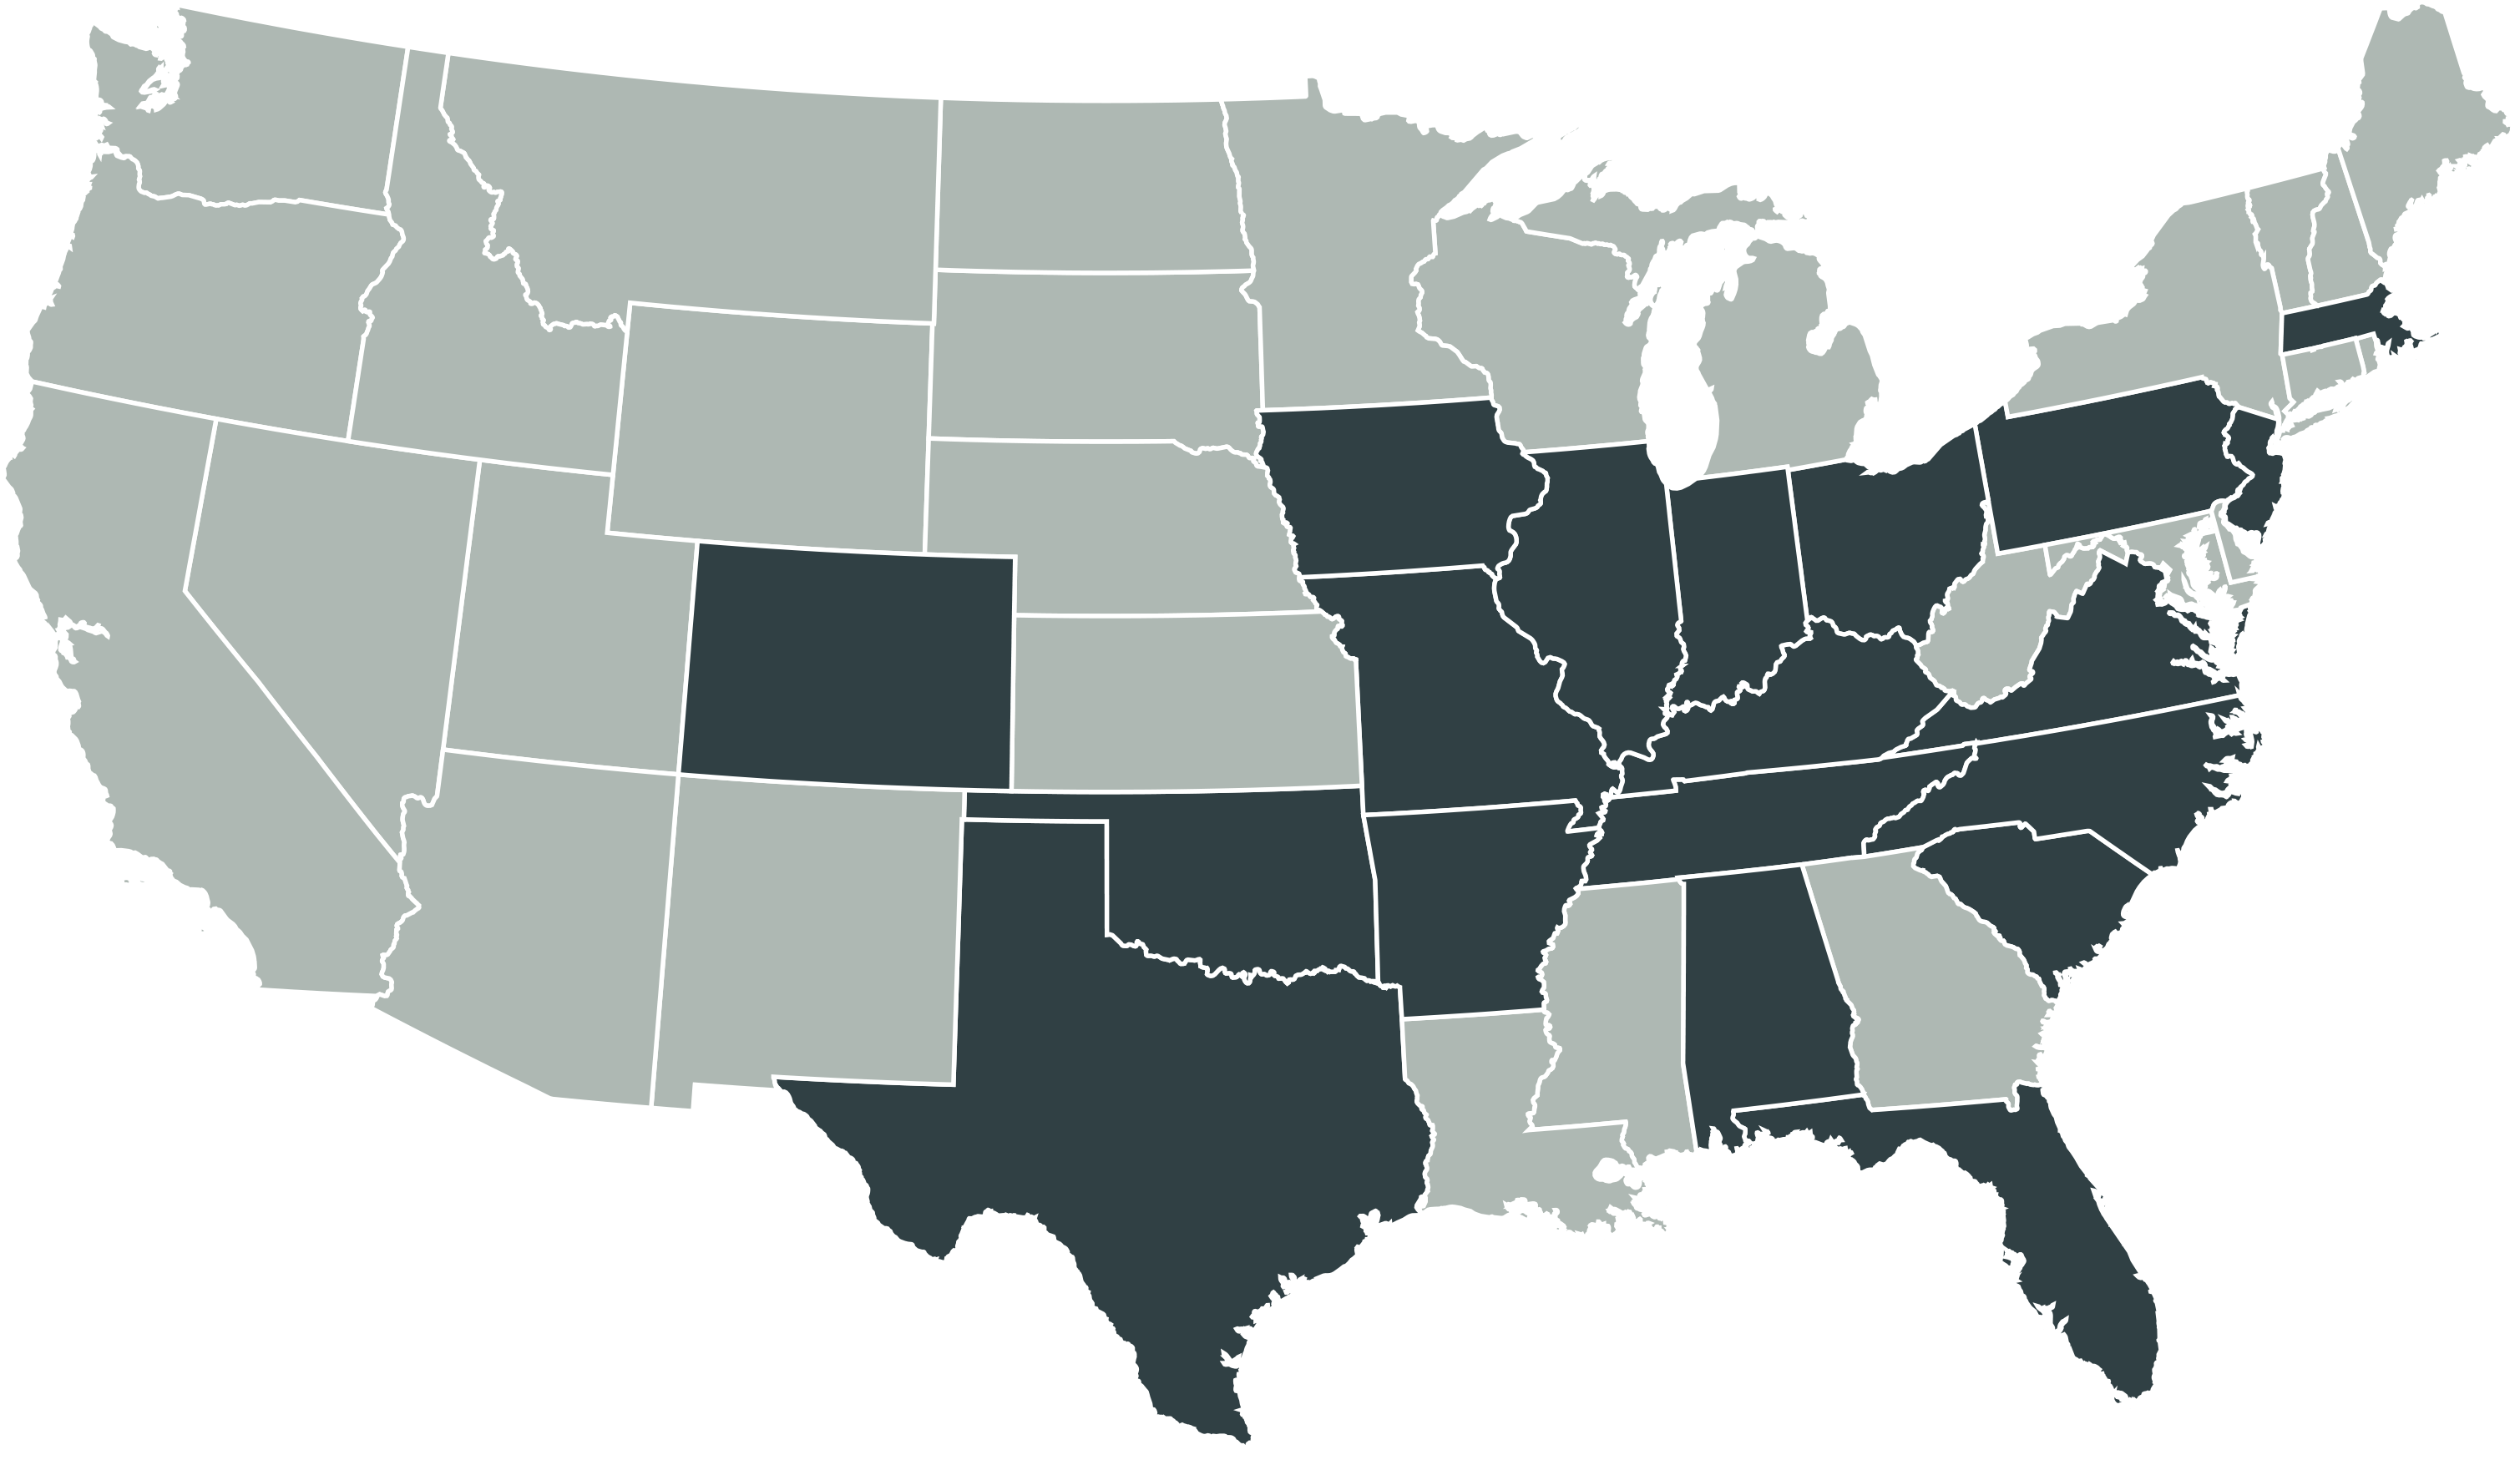 Map of the United States with 18 states highlighted showing CARS recon locations